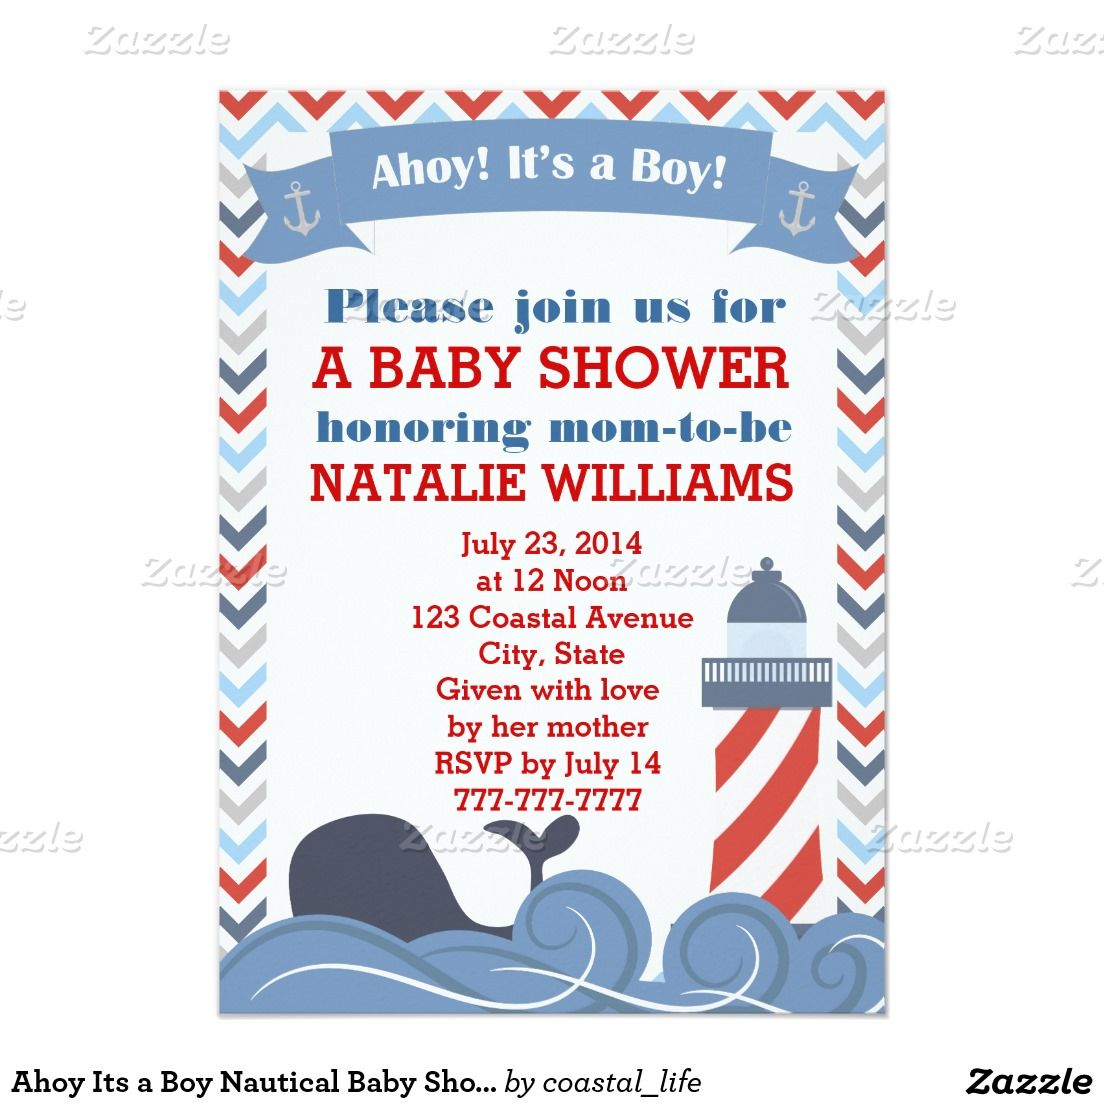 Ahoy its a boy nautical baby shower invitation nautical baby ahoy its a boy nautical baby shower invitation filmwisefo